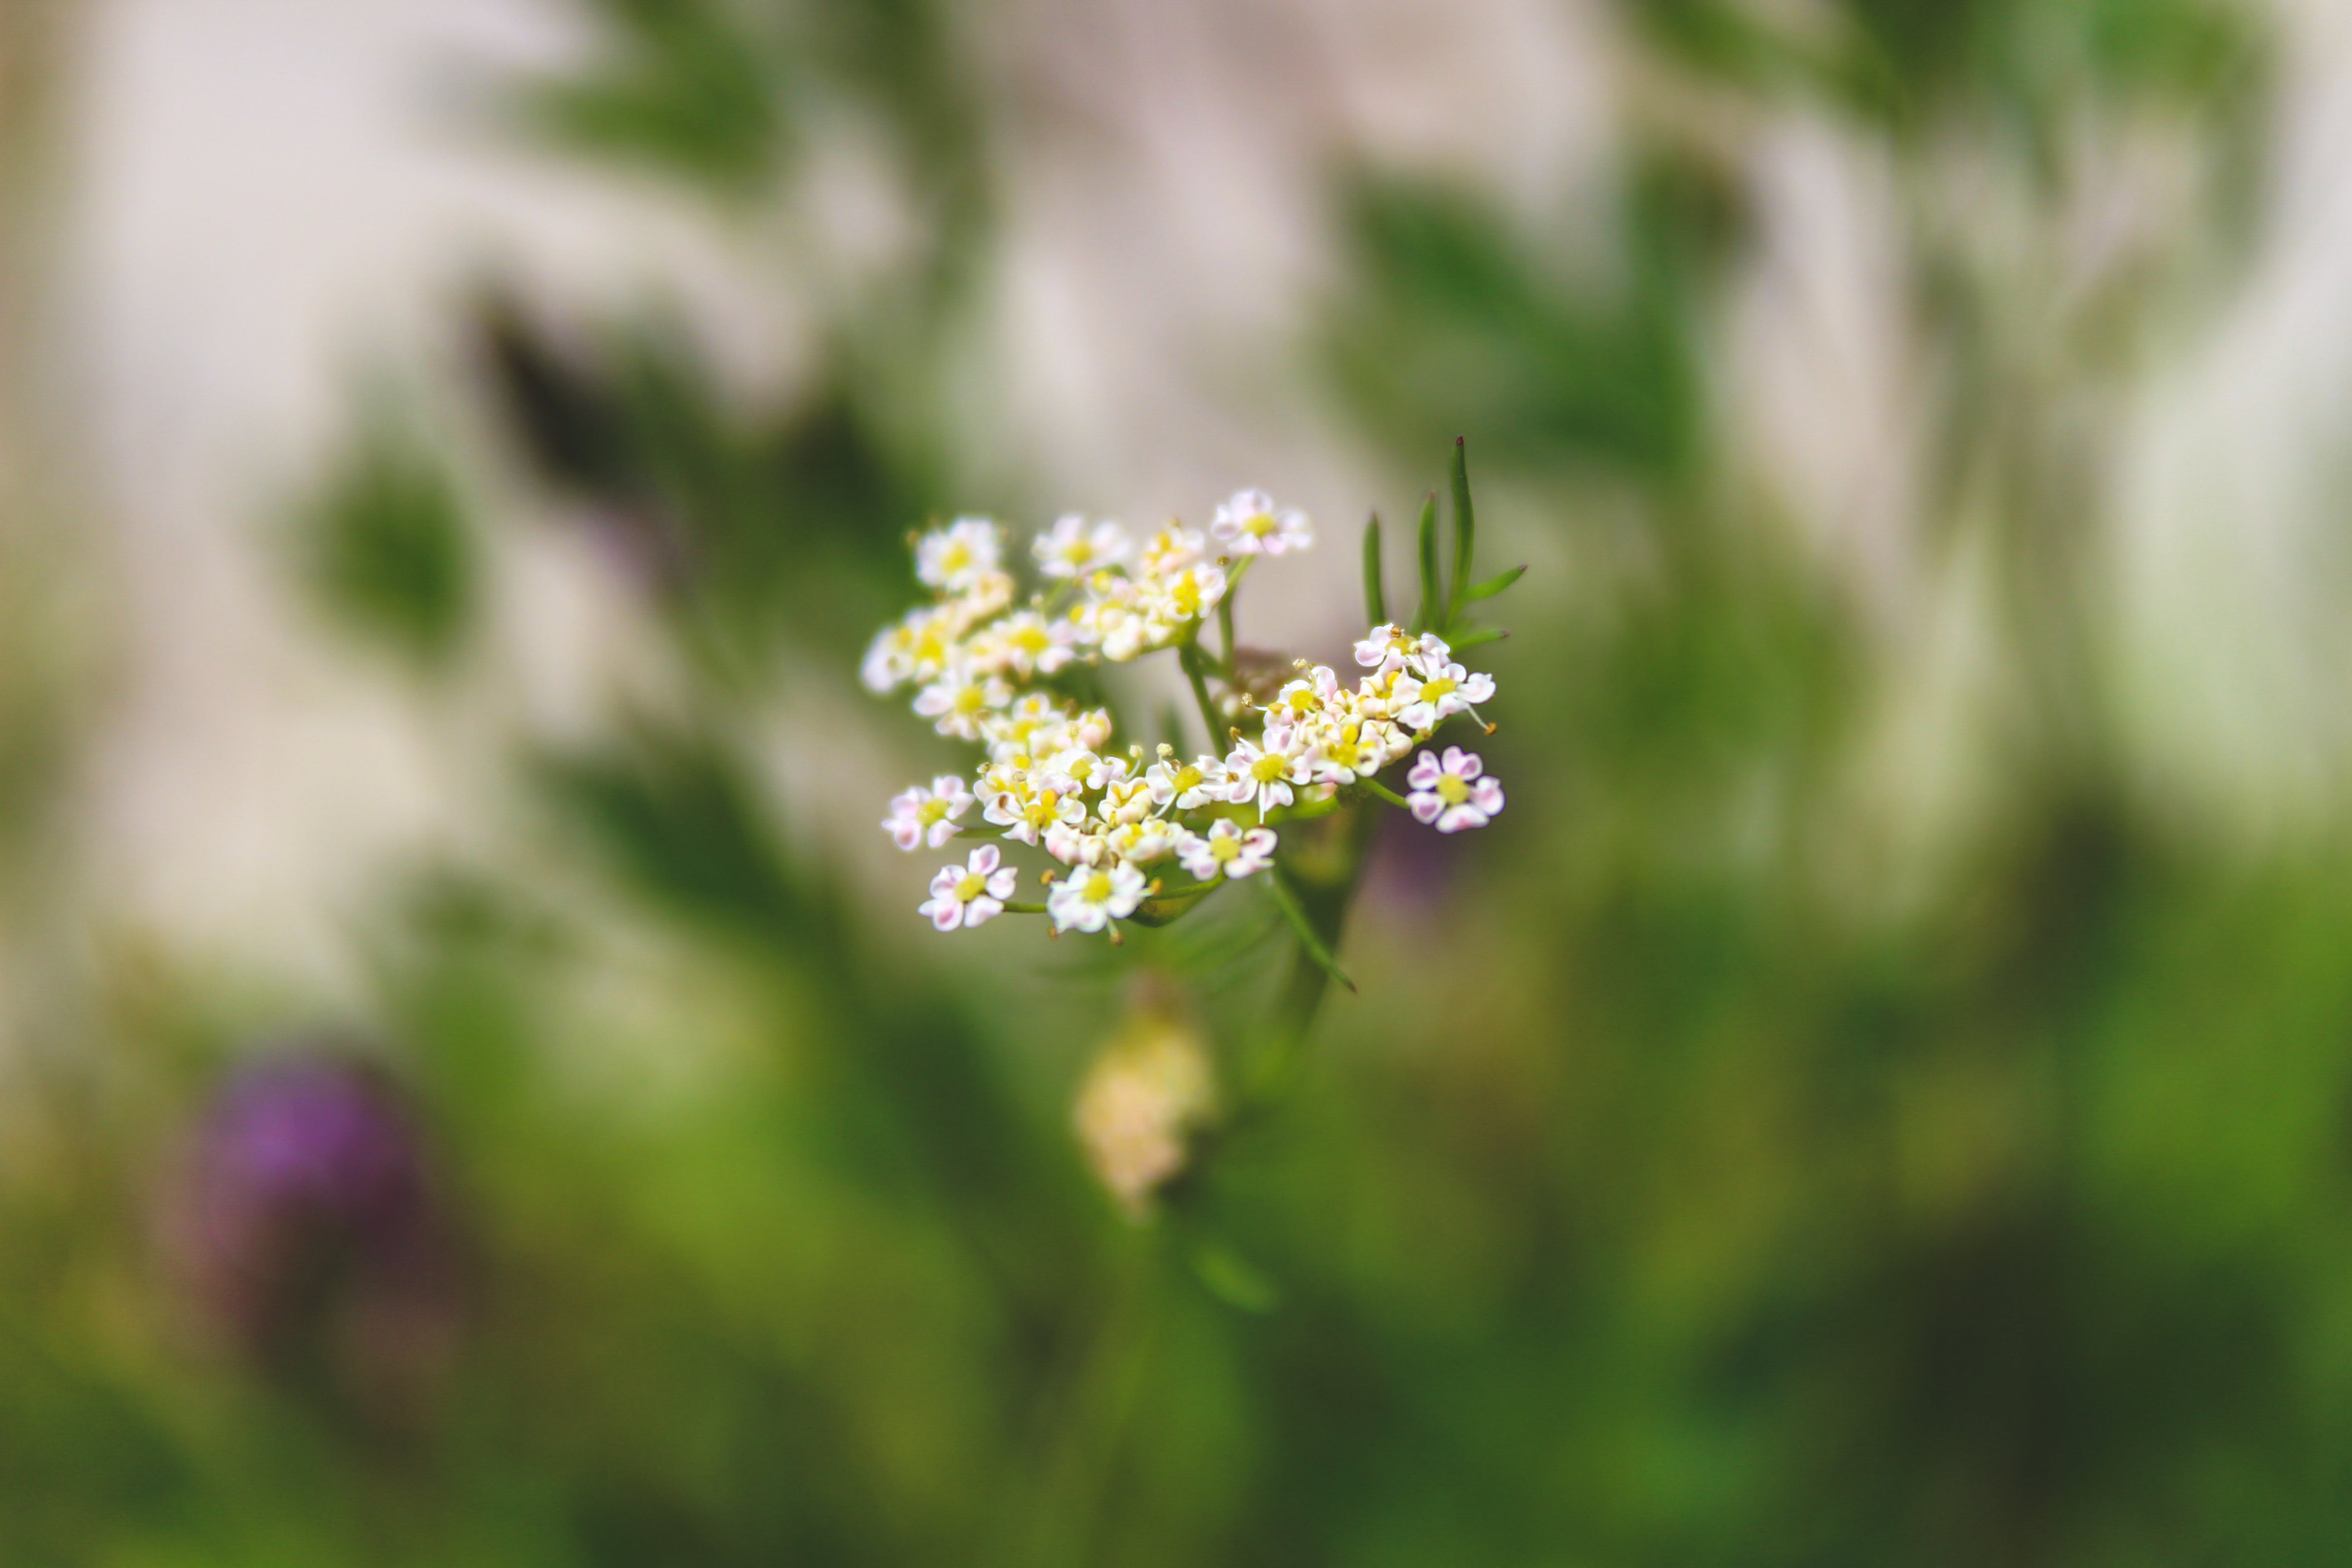 Shallow Focus Photography of White-and-yellow Flowers